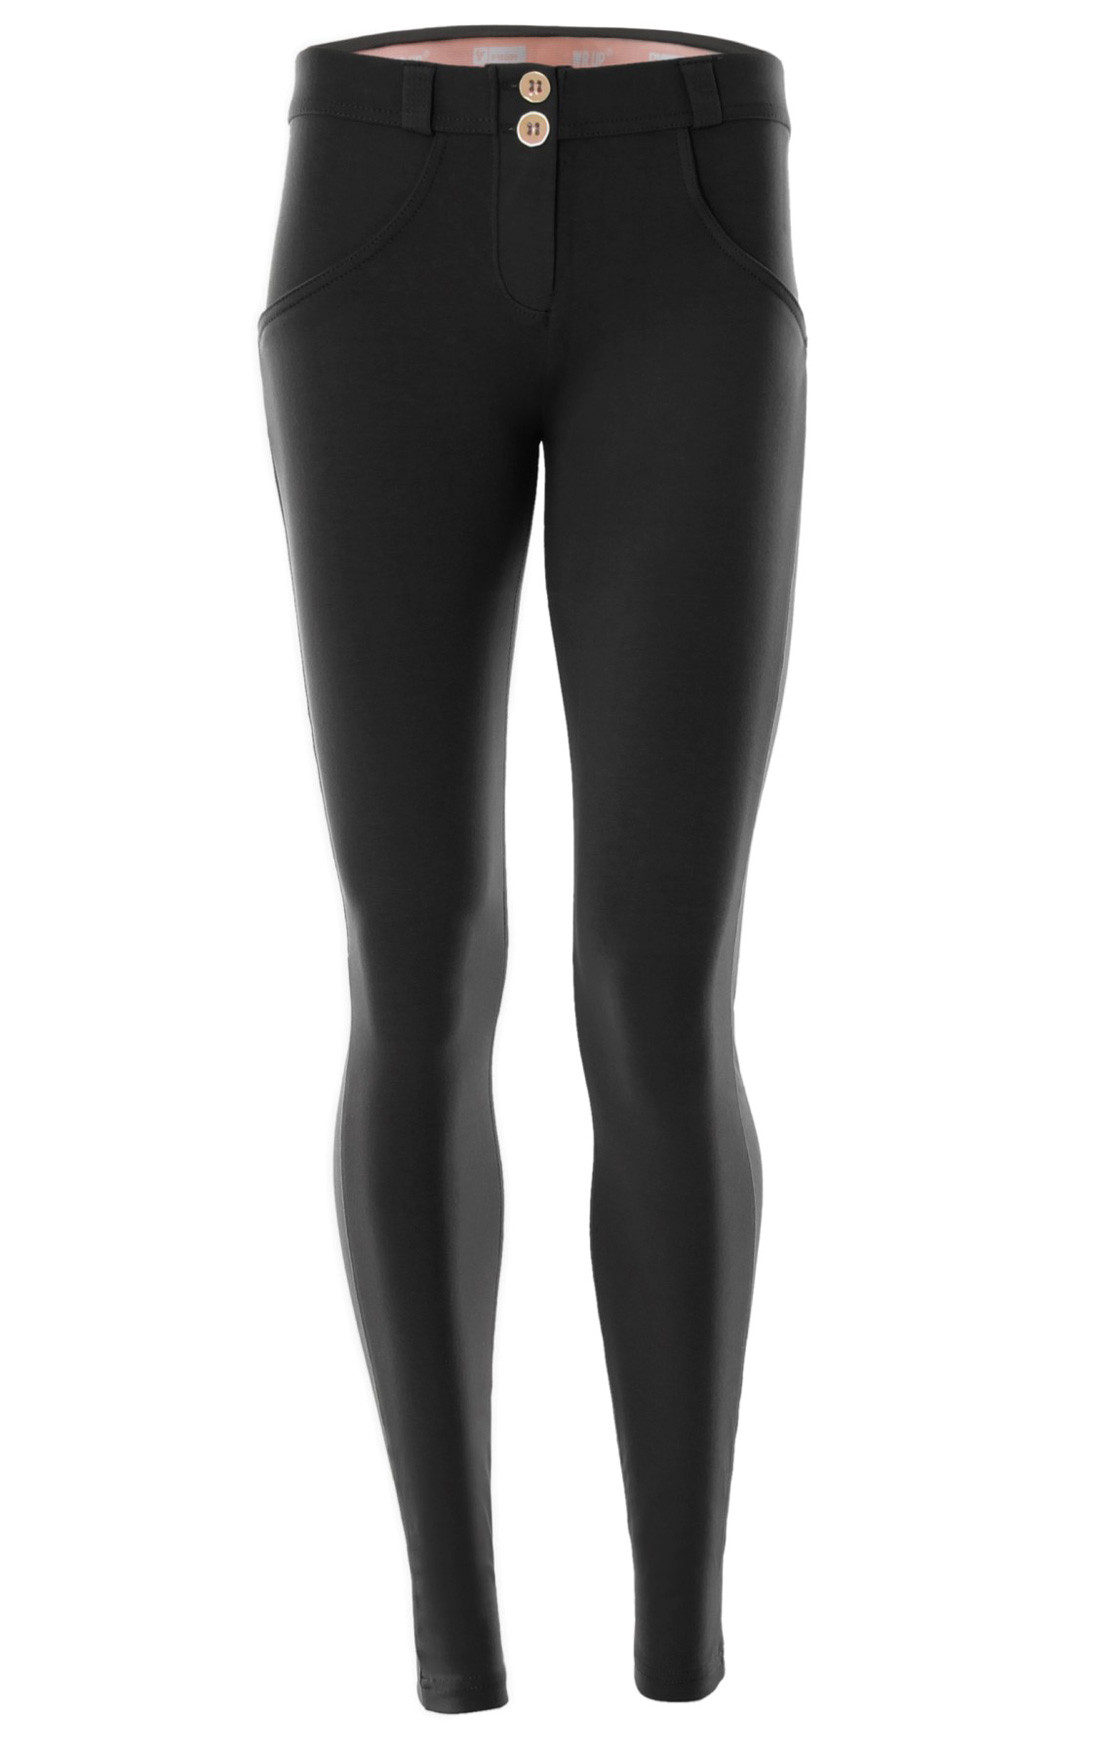 Freddy - Wr.Up® Shaping Effect Mid Waist Skinny Jeggings Black (WRUP1RC01E_N)